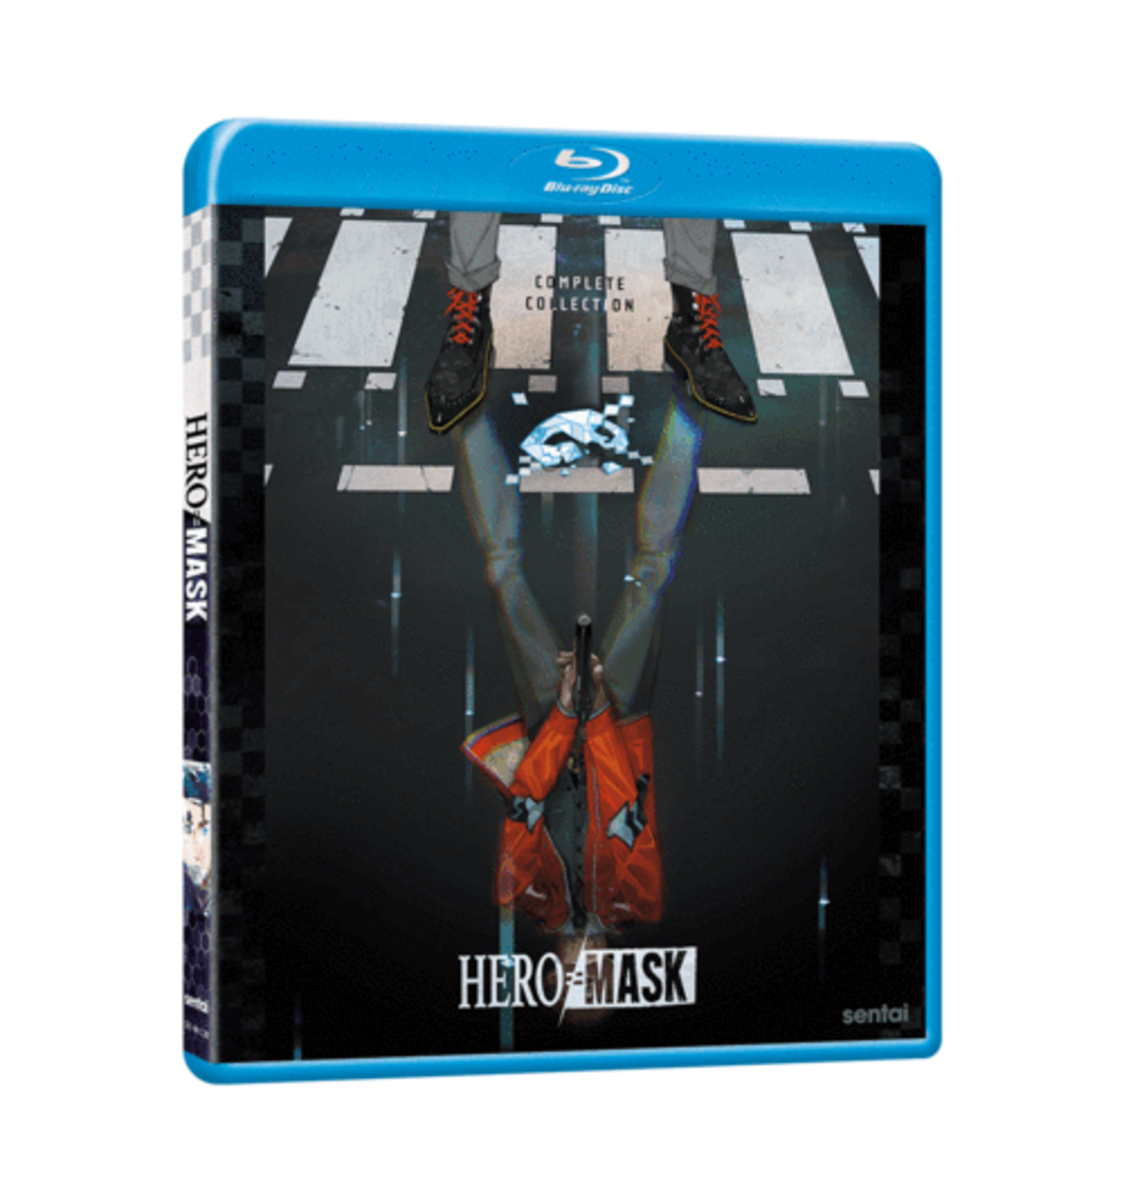 """Official """"Hero Mask"""" Blu-Ray cover art from Sentai Filmworks."""